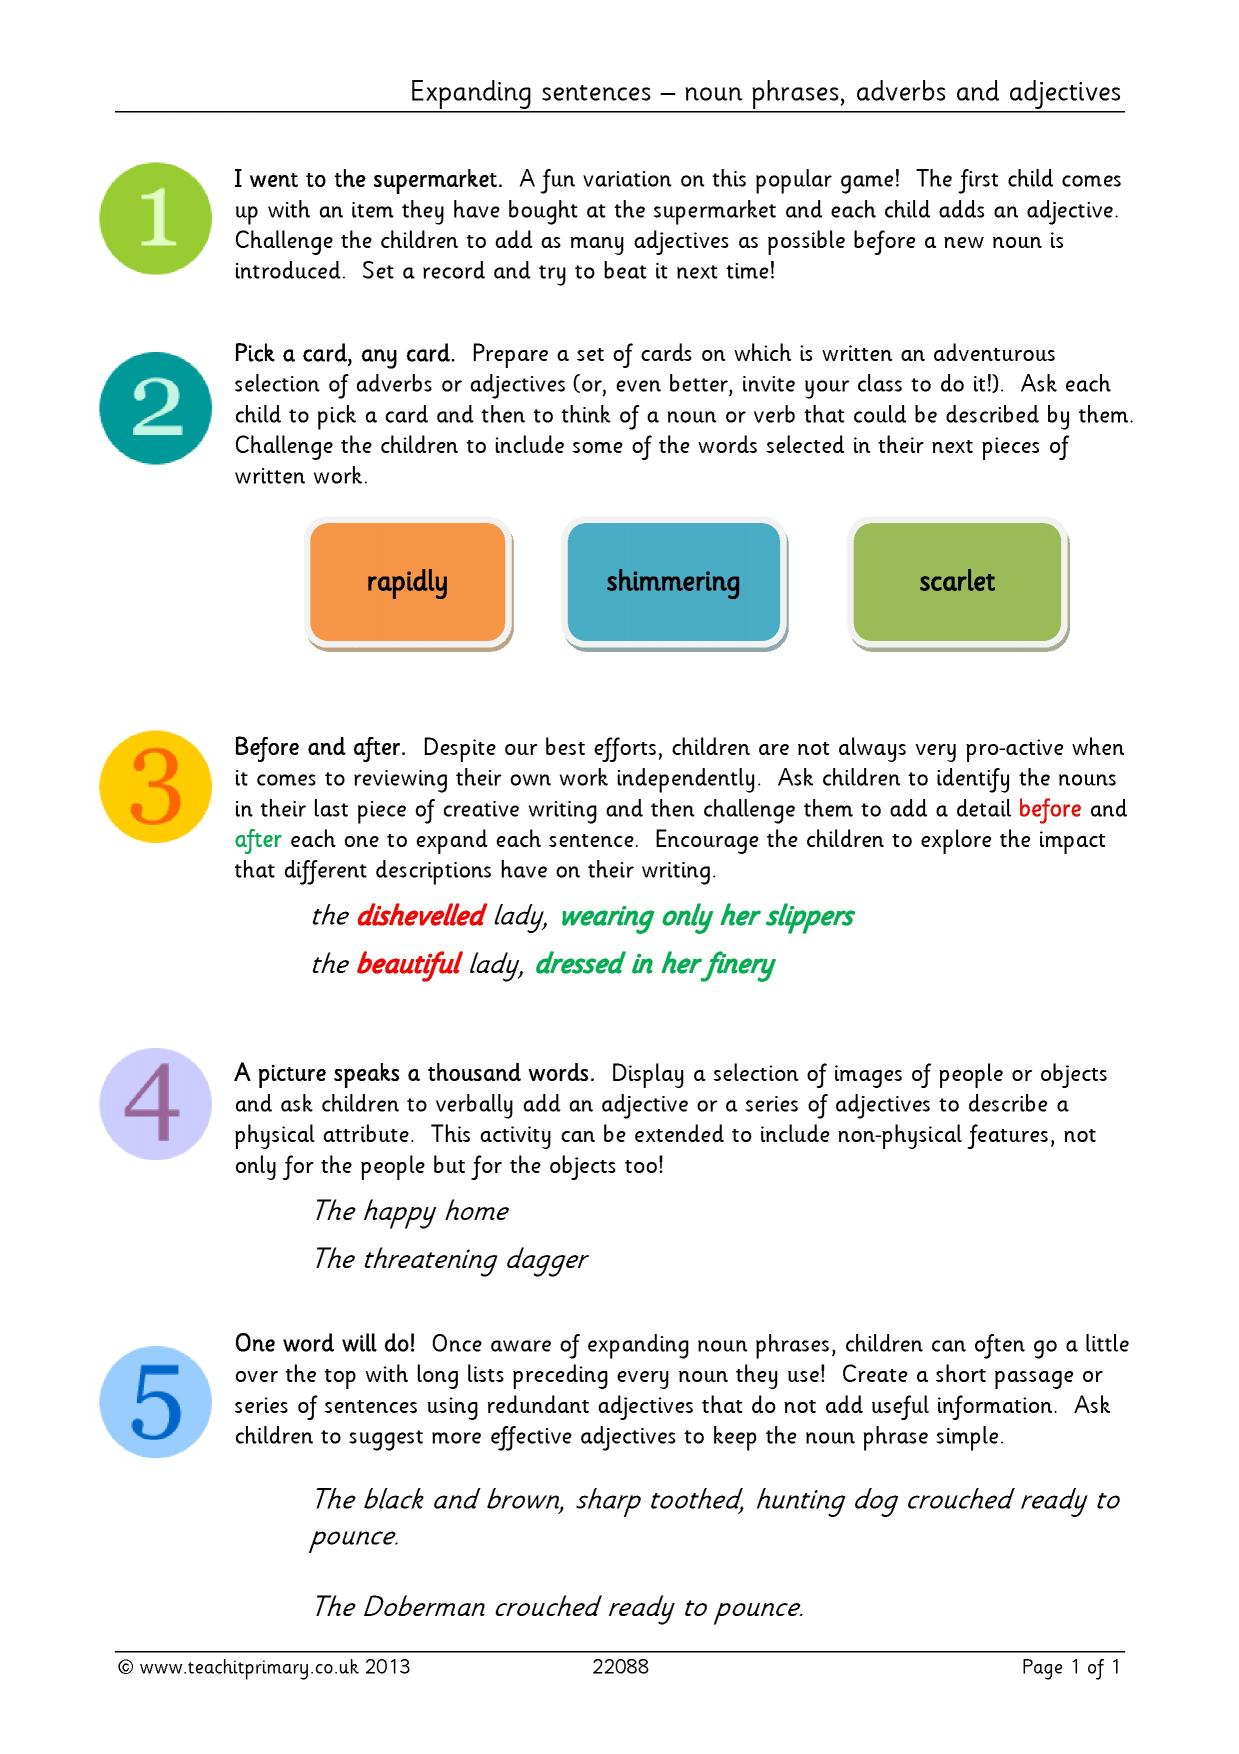 Catalyst Tutorials  catalystutorials Instagram Profile   Pi ico together with Noun Worksheets Ks2   worksheet further Expanded noun phrases   YouTube together with Expanding sentences – noun phrases  adverbs and adjectives further Identifying Nouns KS1 SPAG Test Practice   Clroom Secrets furthermore 7 of the Best Expanded Noun Phrases Ex les and Resources for KS2 as well 7 of the Best Expanded Noun Phrases Ex les and Resources for KS2 further Expanding sentences   noun phrases  adverbs and adjectives in addition Nouns Worksheets   Noun Phrases Worksheets in addition Expanded Noun Phrases Worksheet   Story Walk by nayanmaya   Teaching also Expanded Noun Phrases Worksheets Year 2 Expanding Login To Download together with What is a phrase    Phrases explained for parents   Phrases in in addition 55 Adverbial Phrases Ks2 Workshets  Sort The Adverbials Diffeiated together with Expanded Noun Phrases Mini Test   GPS  grammar  nouns  noun phrases as well Noun Phrases Worksheets   Sanfranciscolife in addition Quiz   Worksheet   Noun Phrases   Study. on expanded noun phrases worksheet ks2